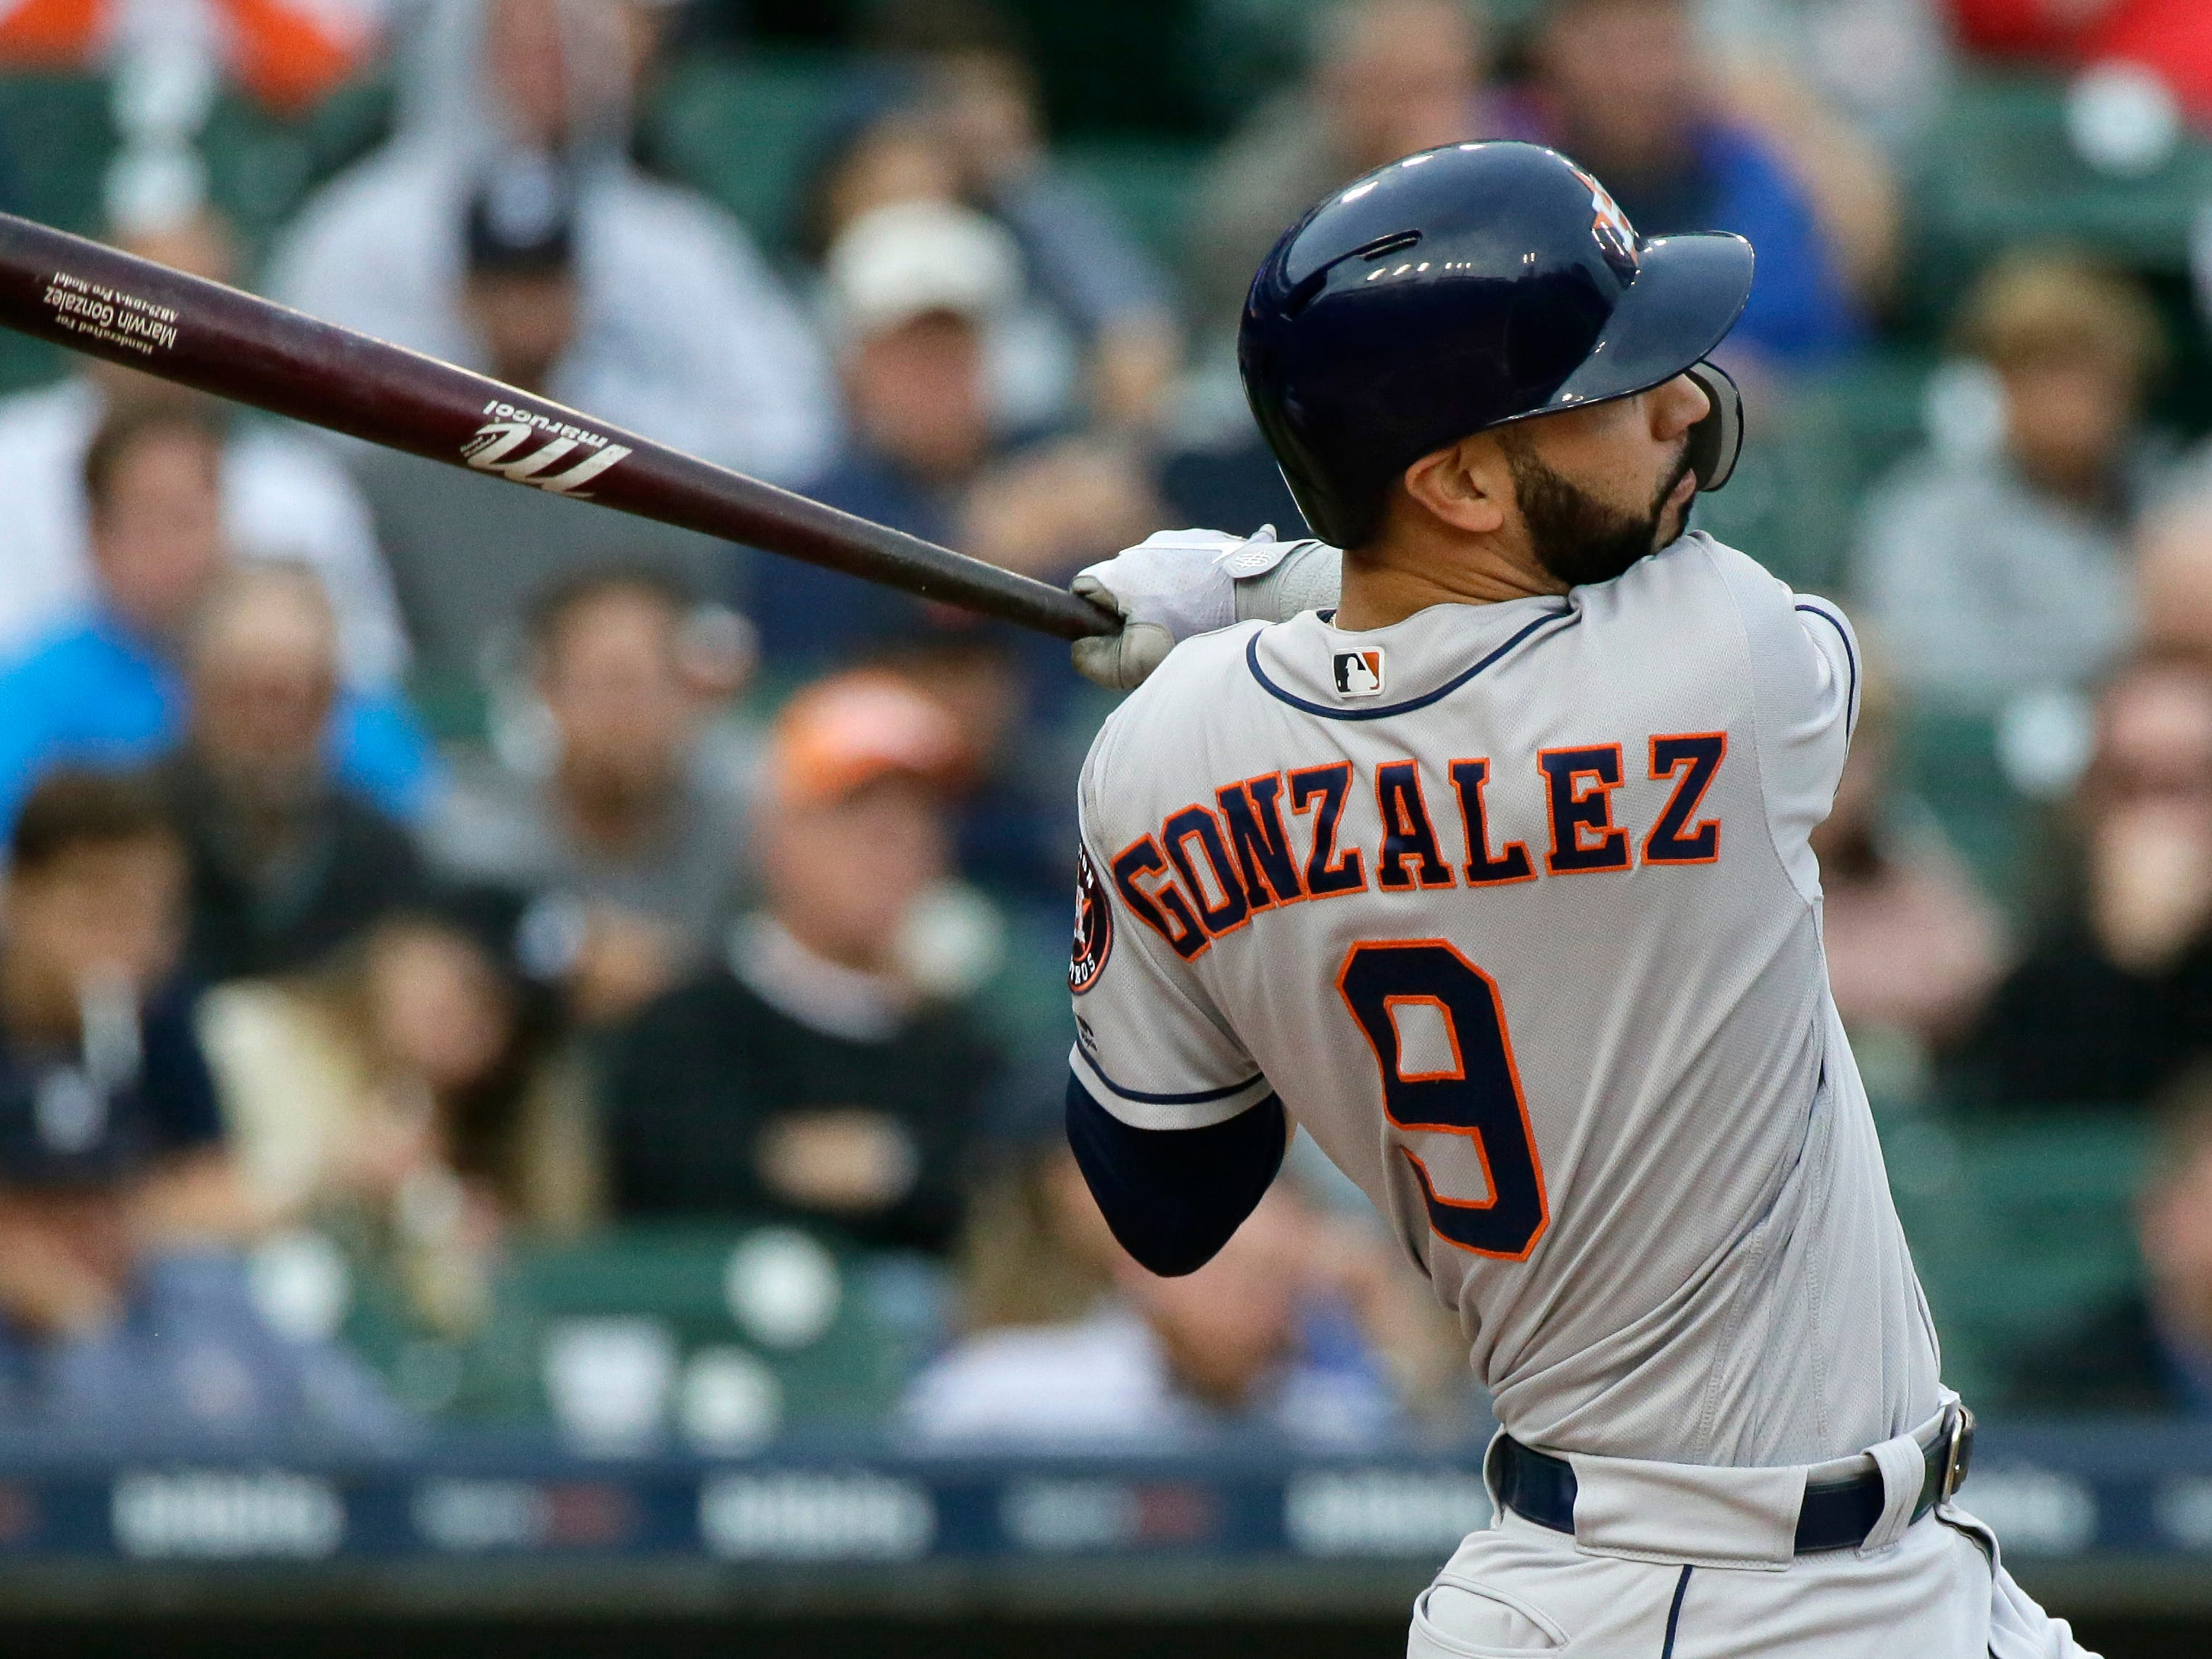 Houston Astros' Marwin Gonzalez singles to drive in teammate Tyler White during the third inning.